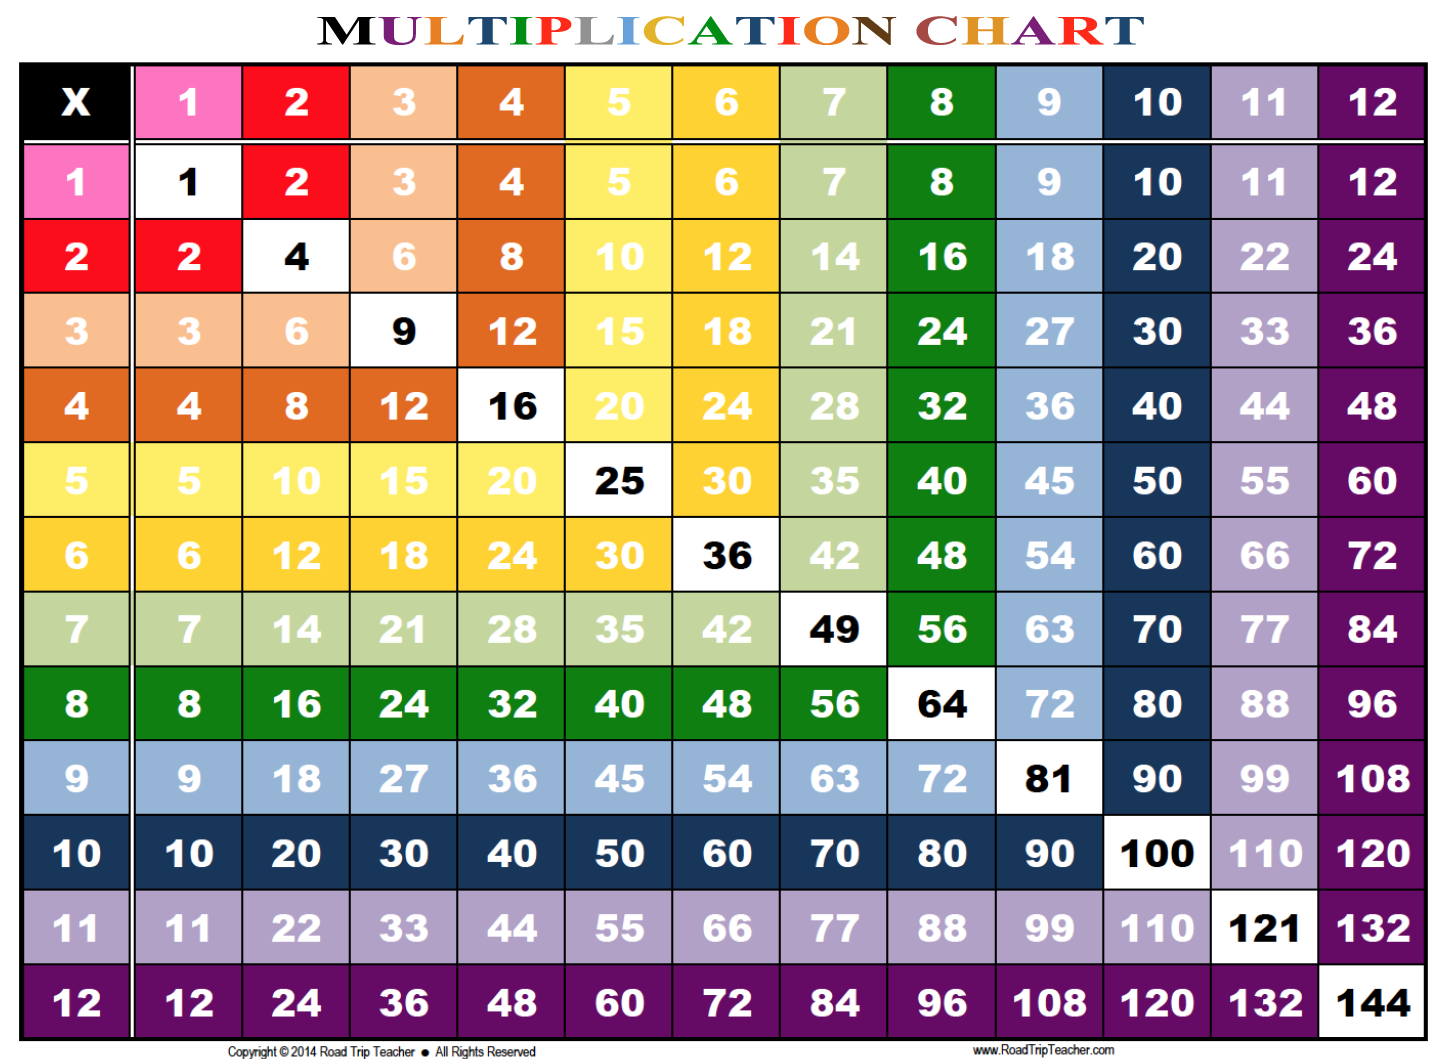 Multiplication chart printable also math rh pinterest